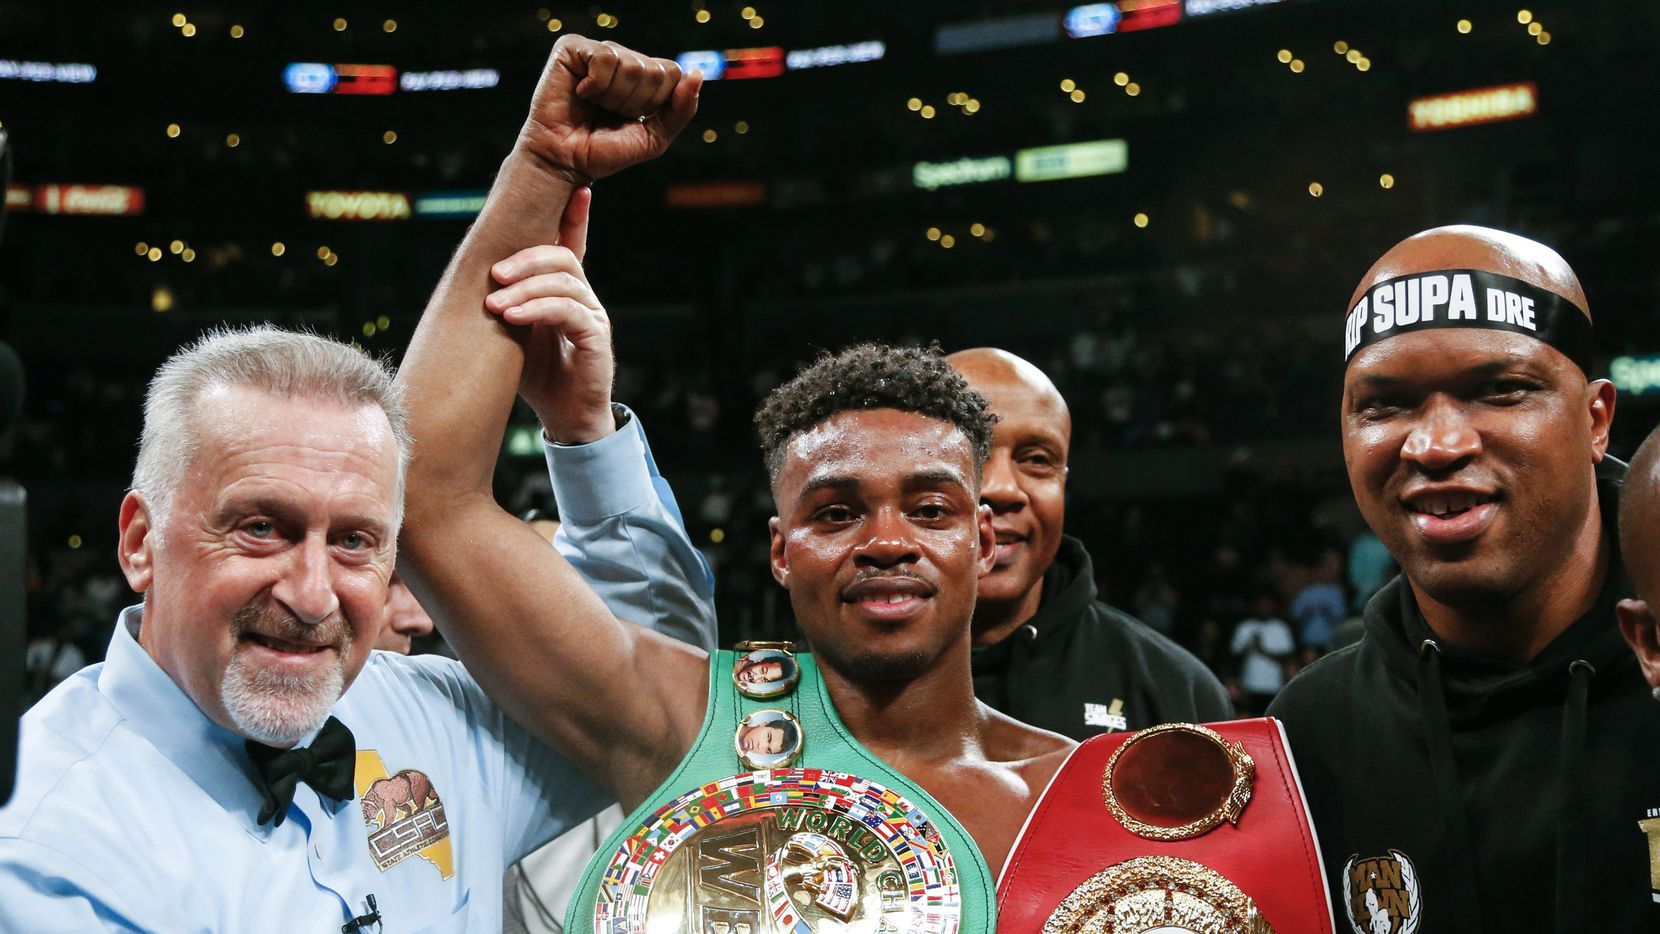 Errol Spence Jr. celebrates his victory over Shawn Porter during the WBC & IBF World Welterweight Championship boxing match Saturday, Sept. 28, 2019, in Los Angeles.